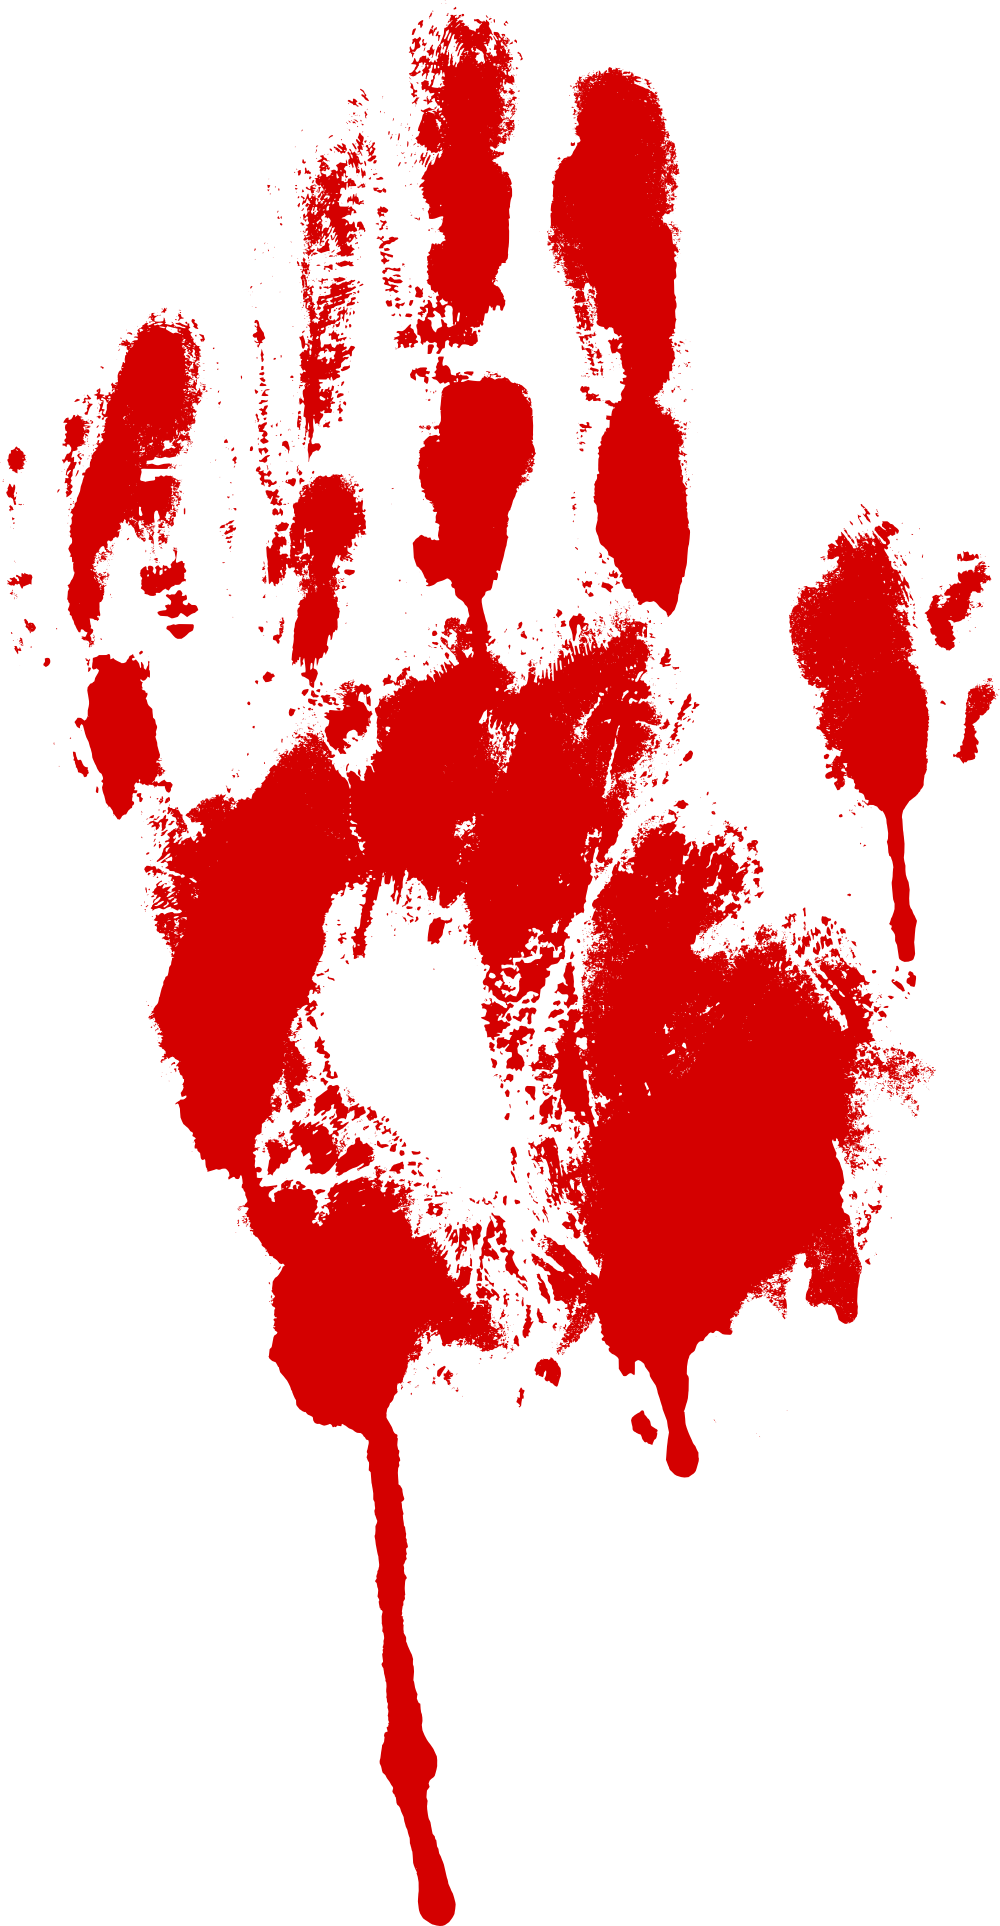 Handprint clipart bloody. Free photo hand print